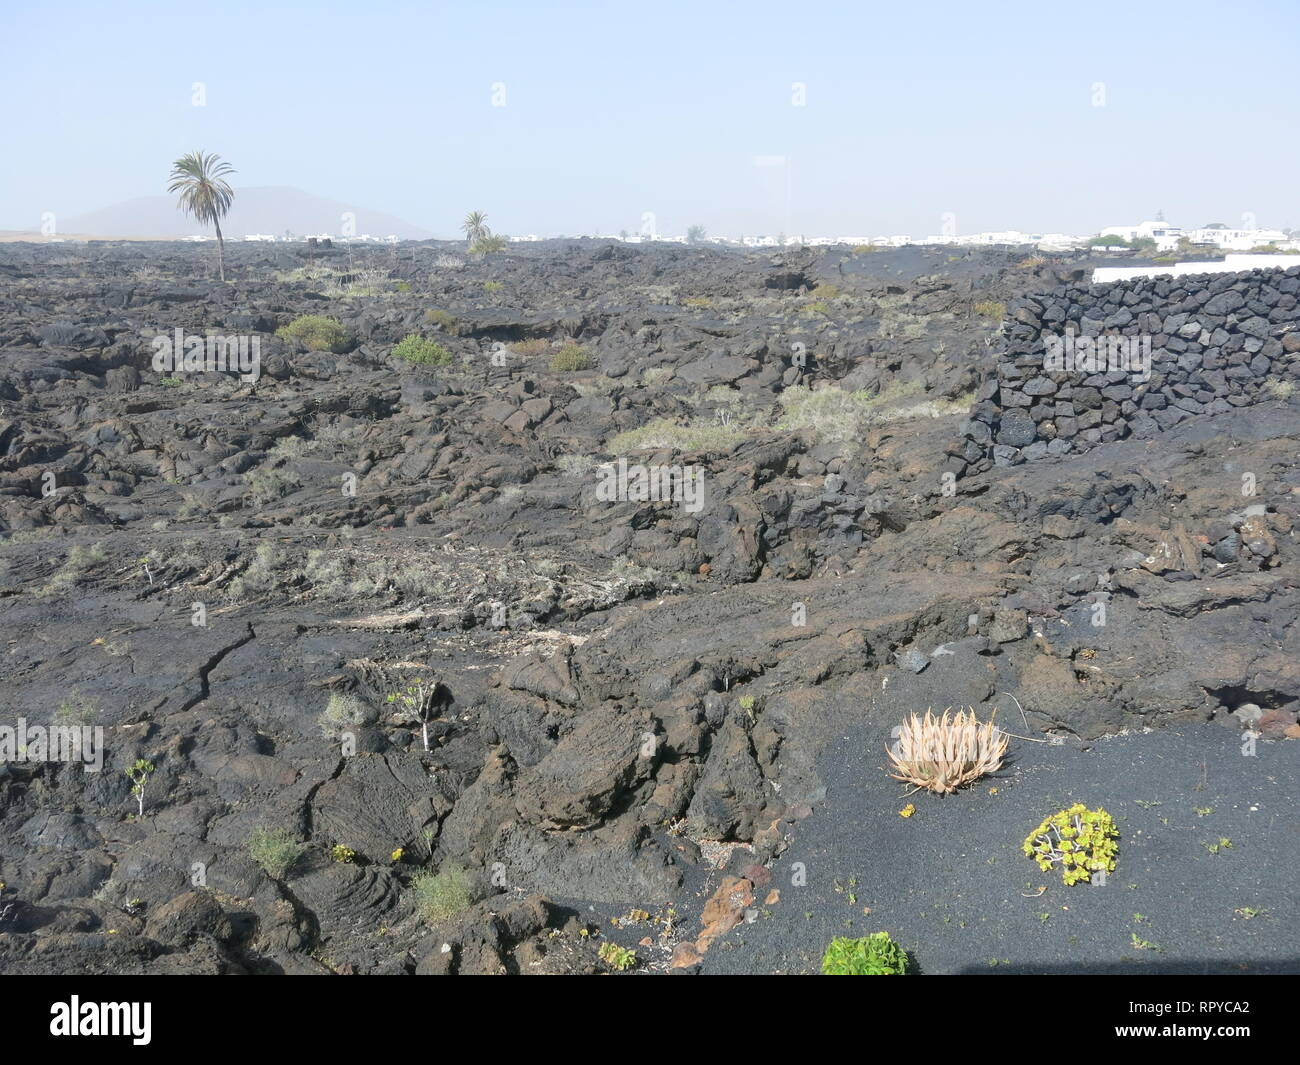 The landscape is bleak outside Cesar Manrique's former home in Lanzarote: rugged terrain made up of black volcanic lava and occasional vegetation - Stock Image